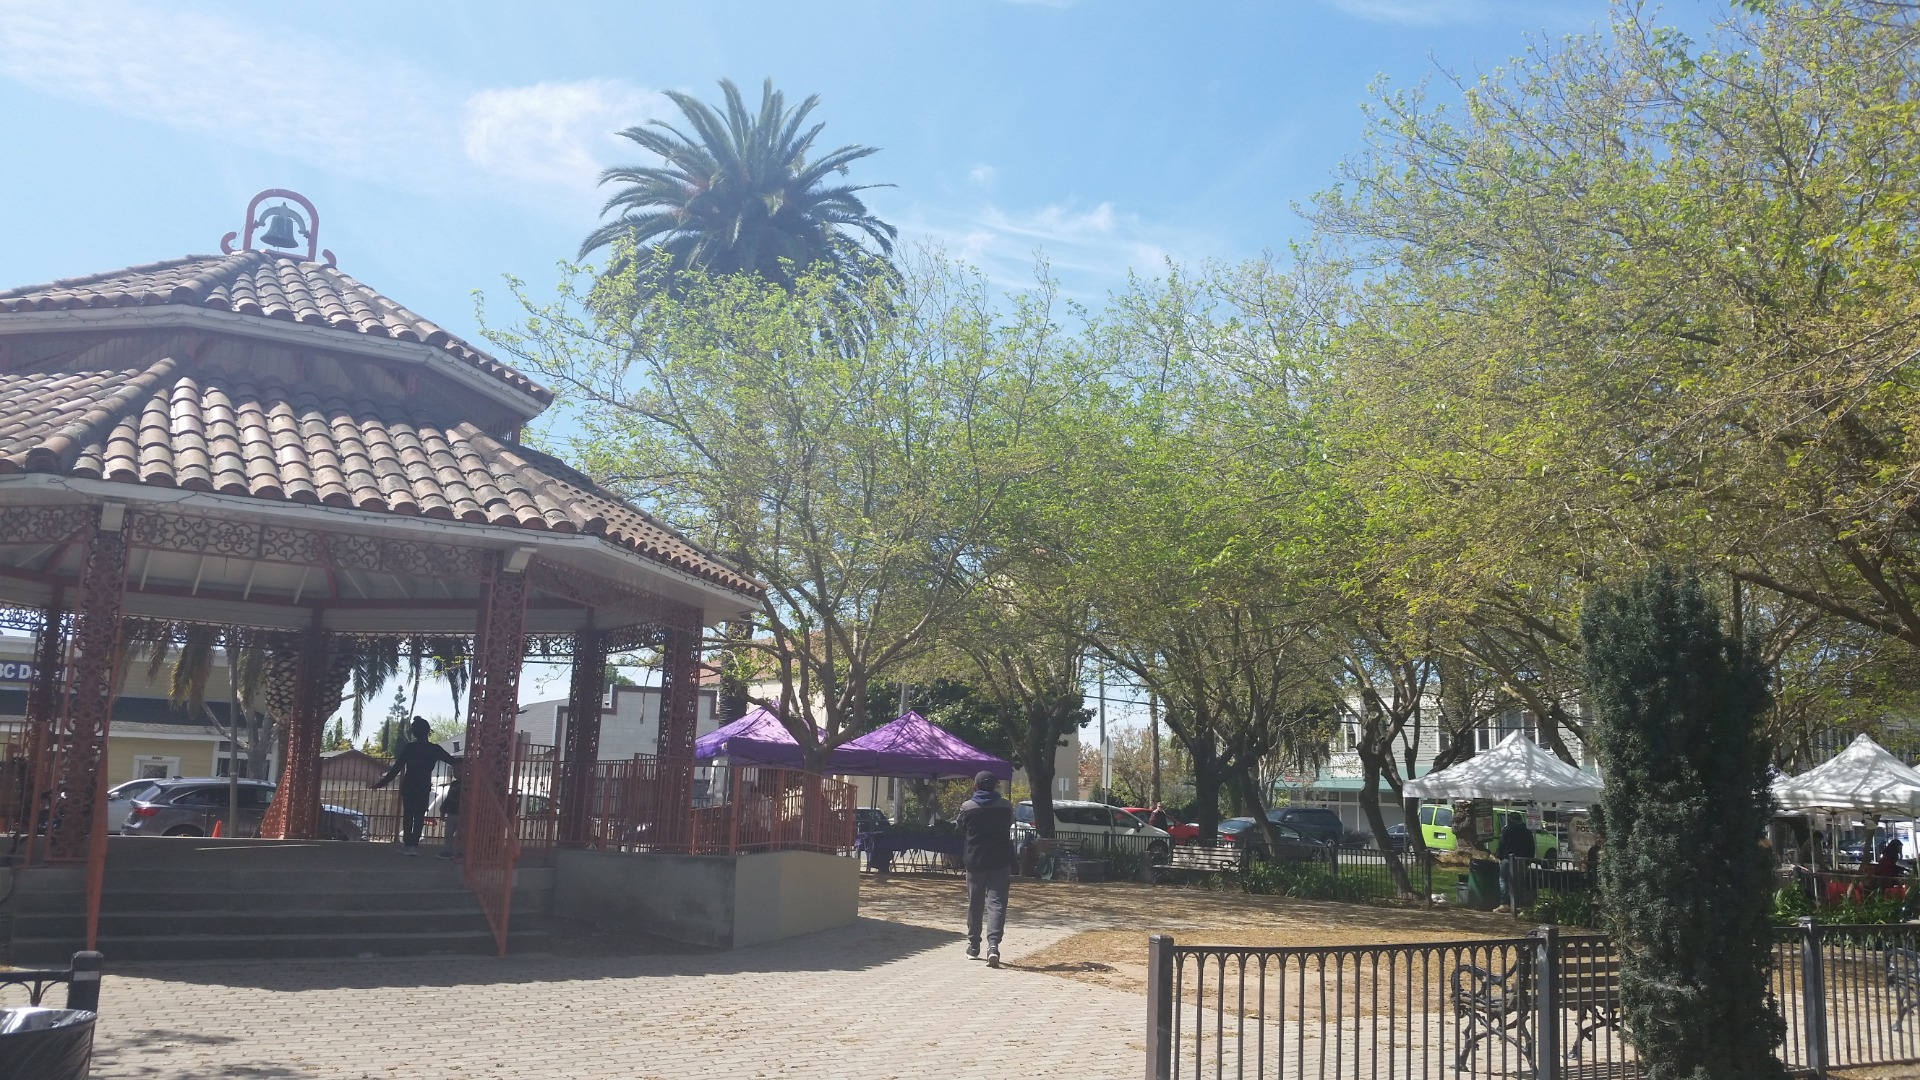 This Farmers' Market is at the Old Alvarado Park. There are a couple of playgrounds and a nice pavillions there. If you have young age kids, they can also play there.